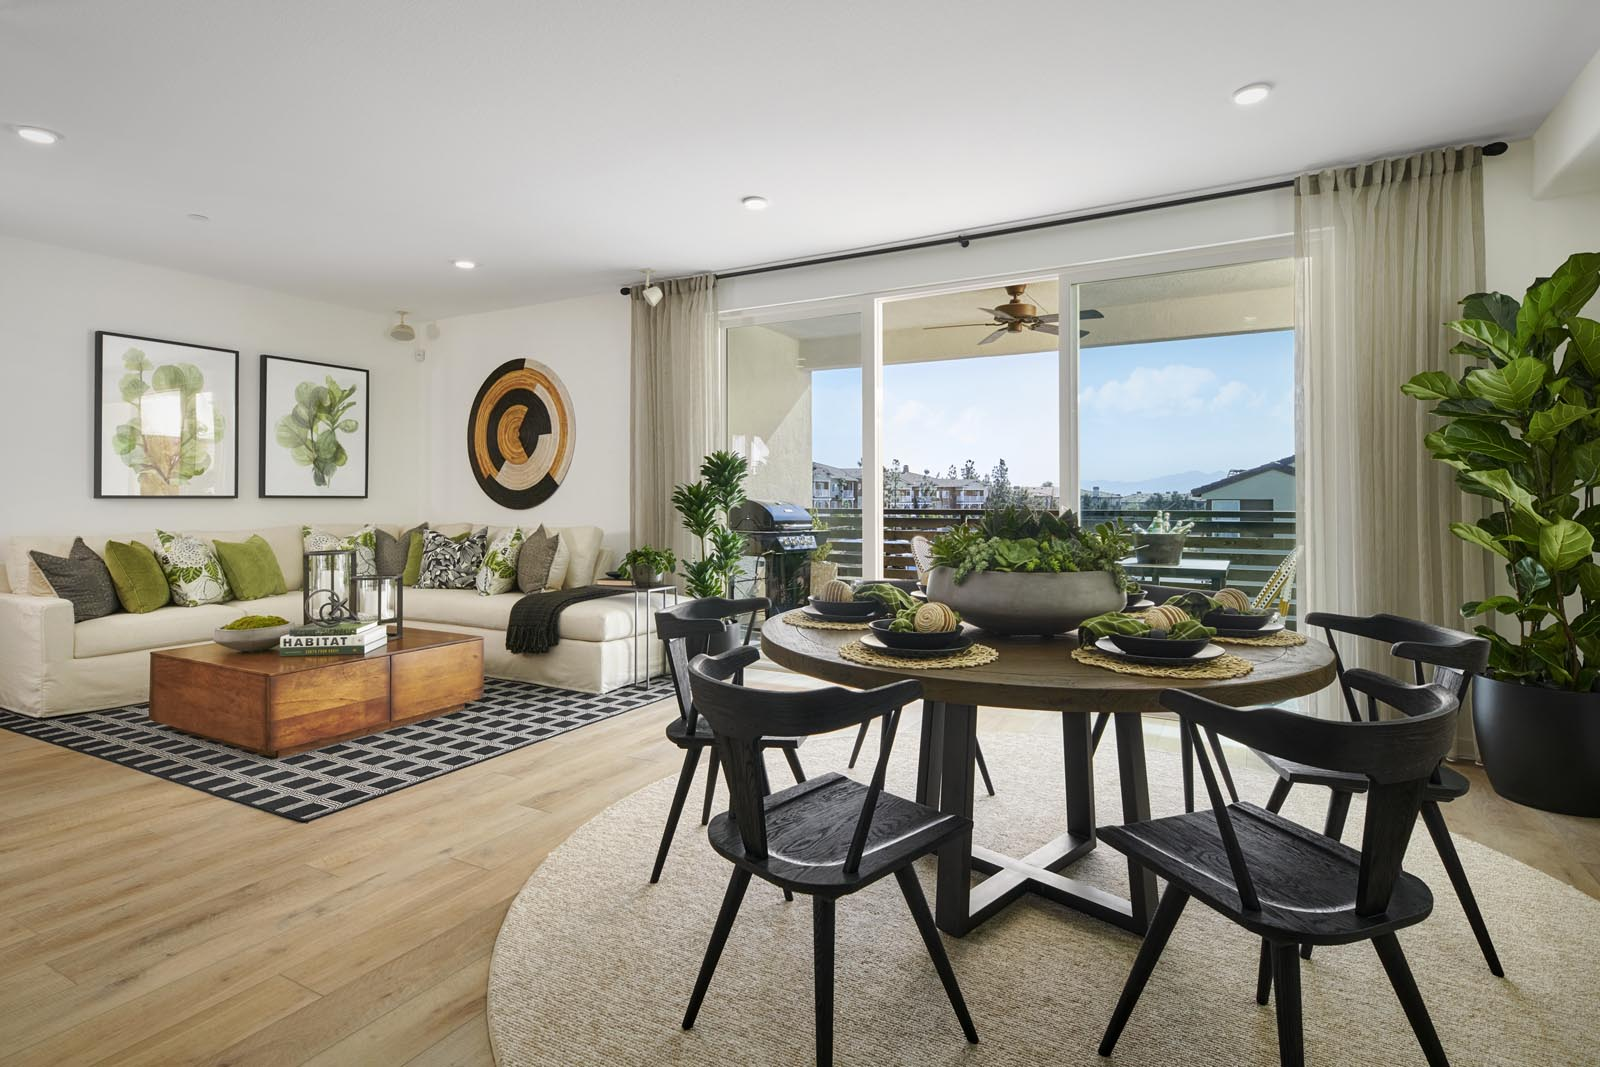 Dining Area to Great Room | Residence 3 | Aspire | New Homes in Rancho Cucamonga, CA | Van Daele Homes